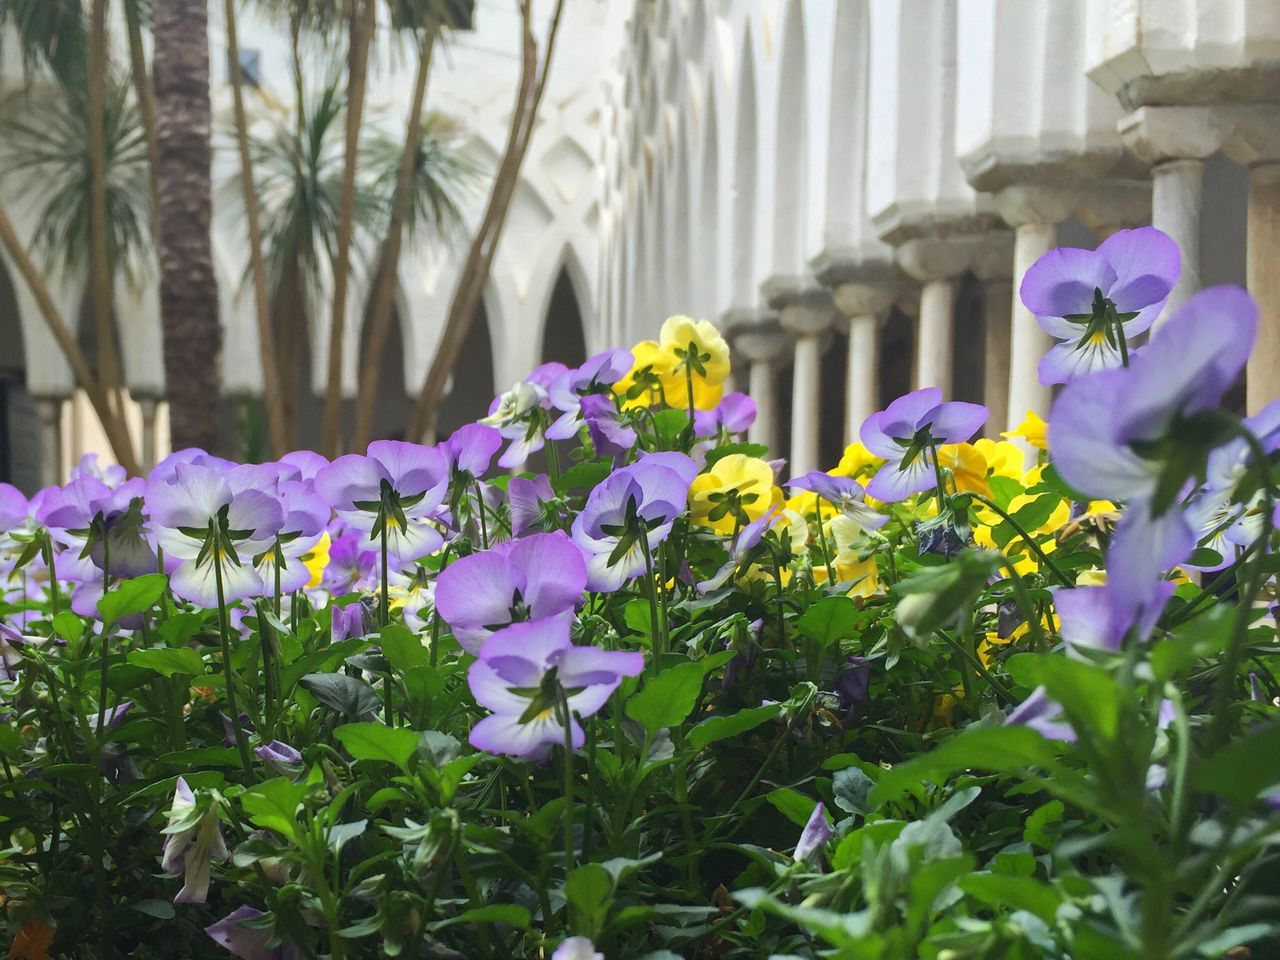 Tranquil courtyard inside Duomo in Amalfi. Amalfi Coast Duomo Di Sant'Andrea Cattedrale Di Sant Andrea Duomo Amalfi Purple And Yellow Flowers Garden View Purple And Yellow Complementary Colors